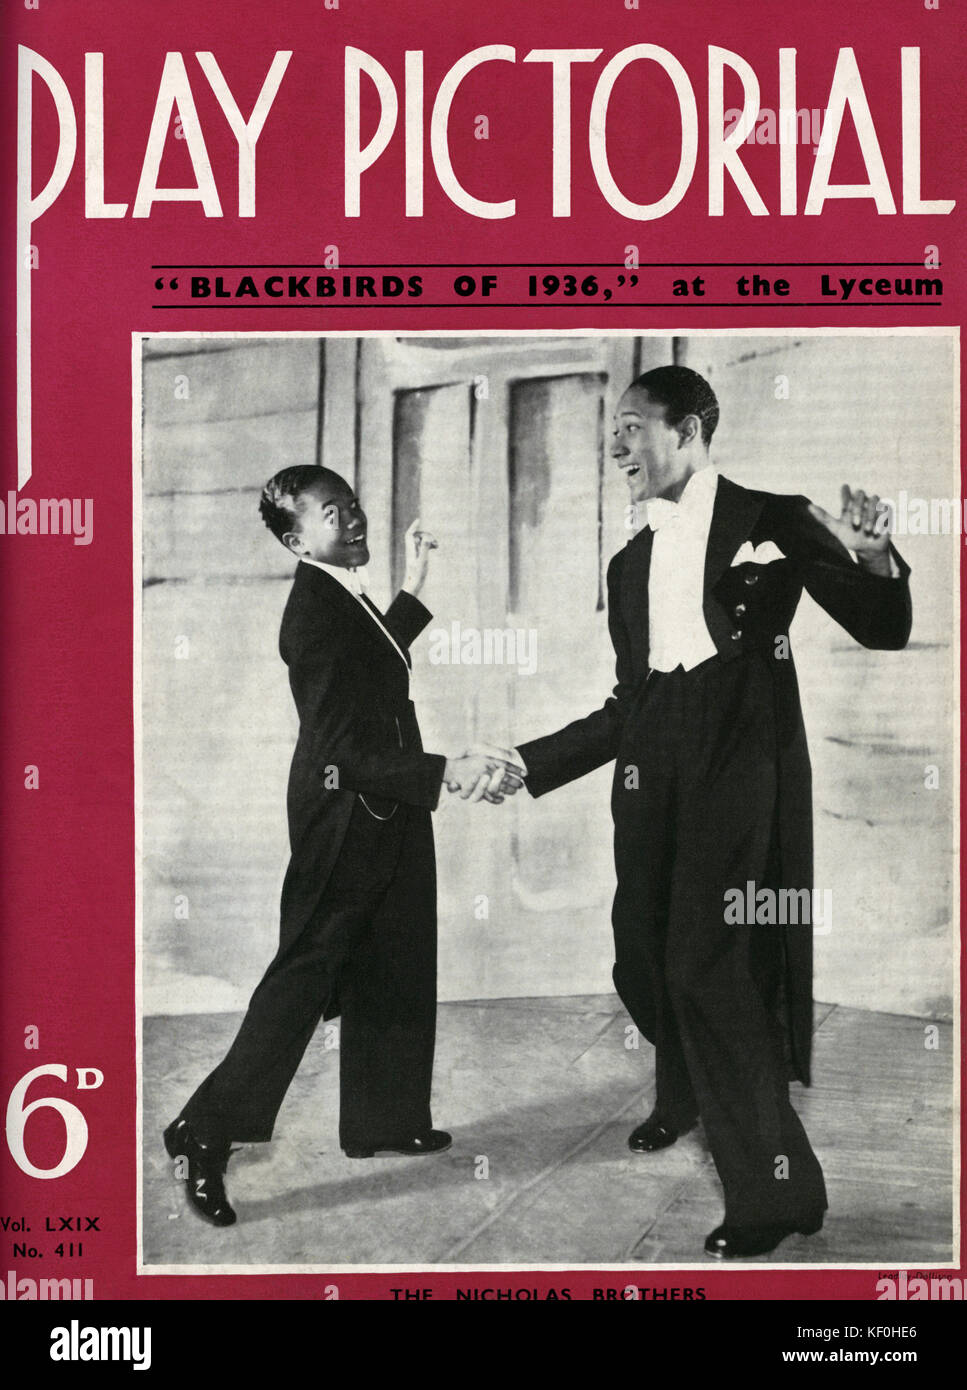 The Nicholas Brothers in Lew Leslie 's 'Blackbirds of 1936', the Lyceum Theatre, London.  Cover of 'Play Pictorial'. Stock Photo